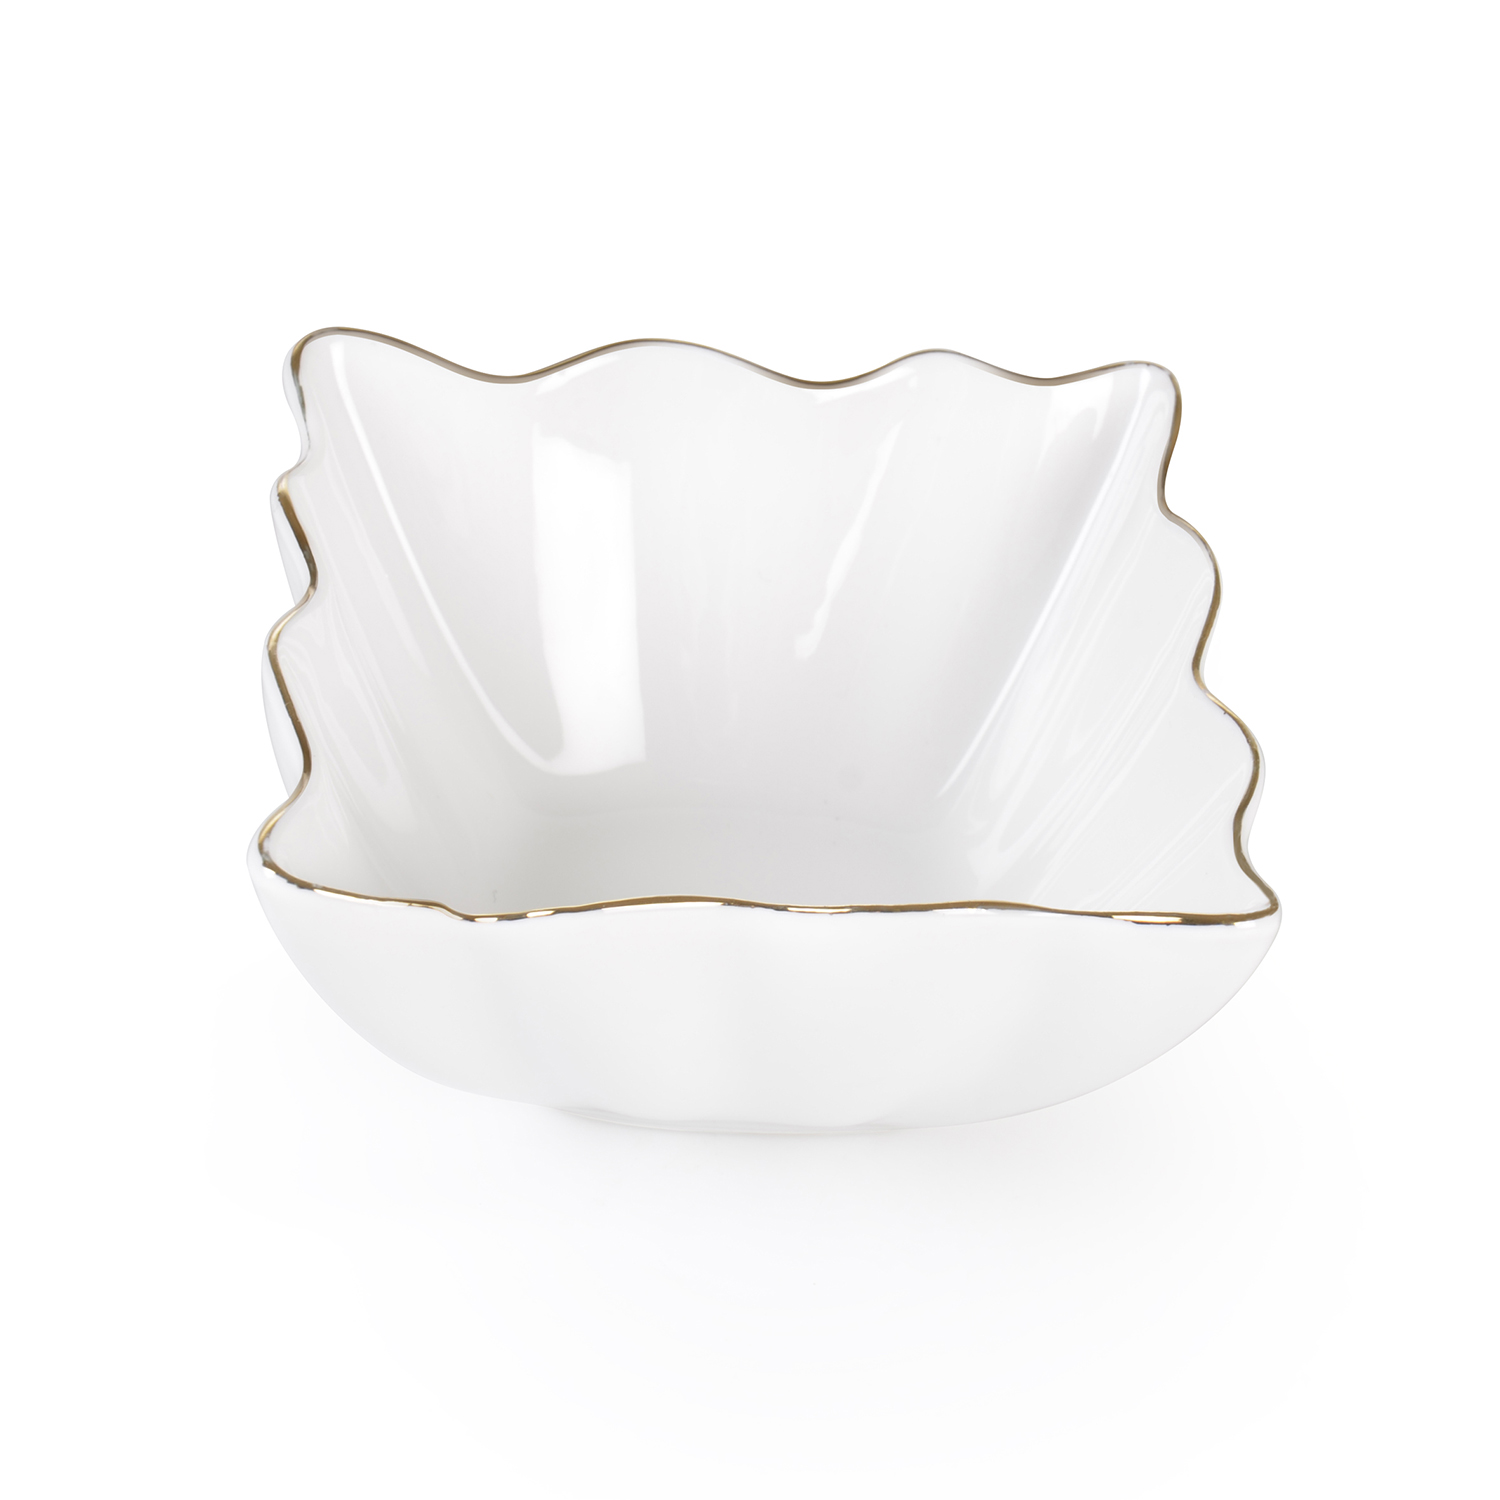 B2242/GOLD PORS YALD. WHITE BOWL 2242